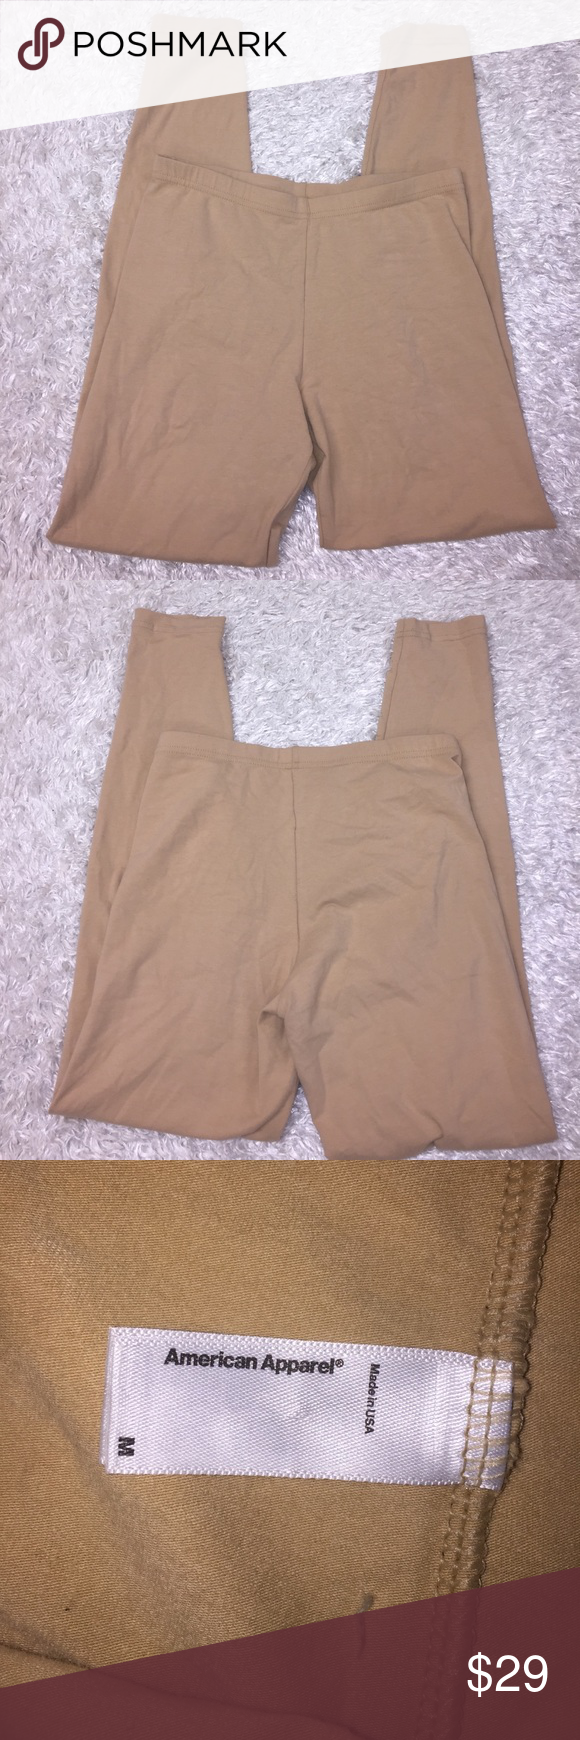 """American Apparel Cotton Leggings Size M, color is tan/nude. Inseam: 26"""". Rise: 9"""". Waist: 12 1/2"""". Feel free to ask any questions! No trades sorry, & offers thru the offer button only! 😊 American Apparel Pants Leggings"""